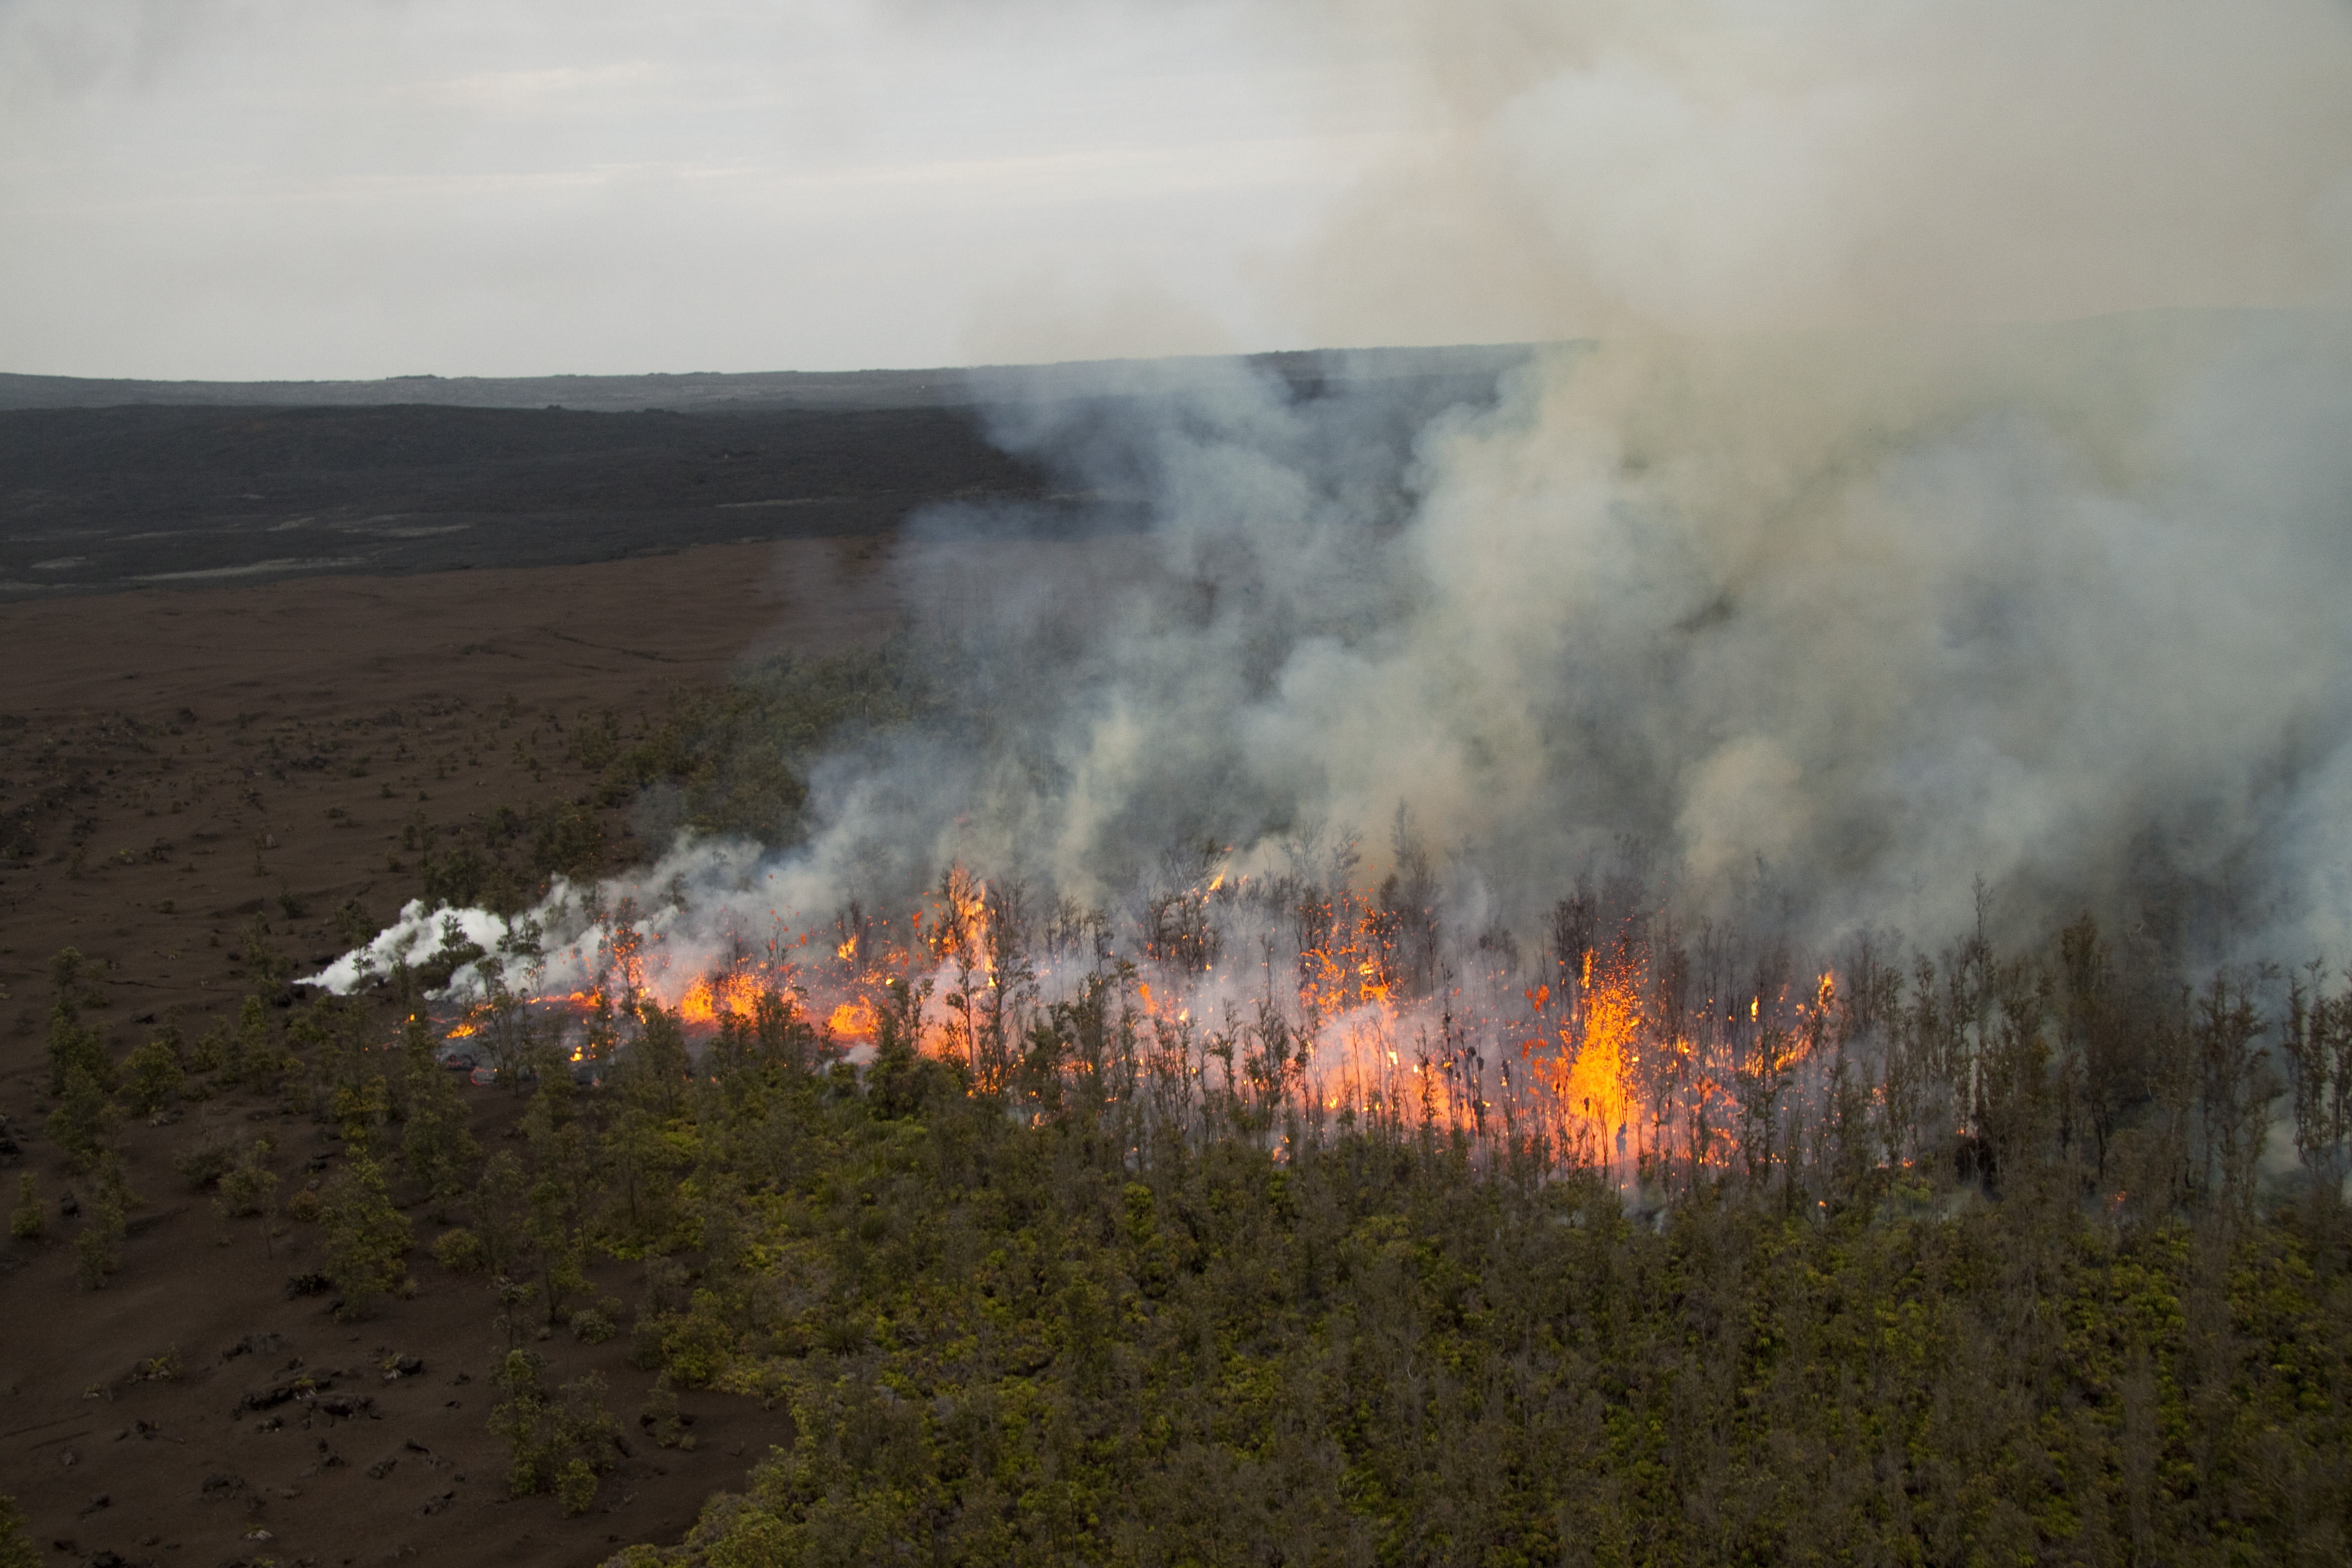 VIDEO: First look at new volcano fissure erupting in Hawaii